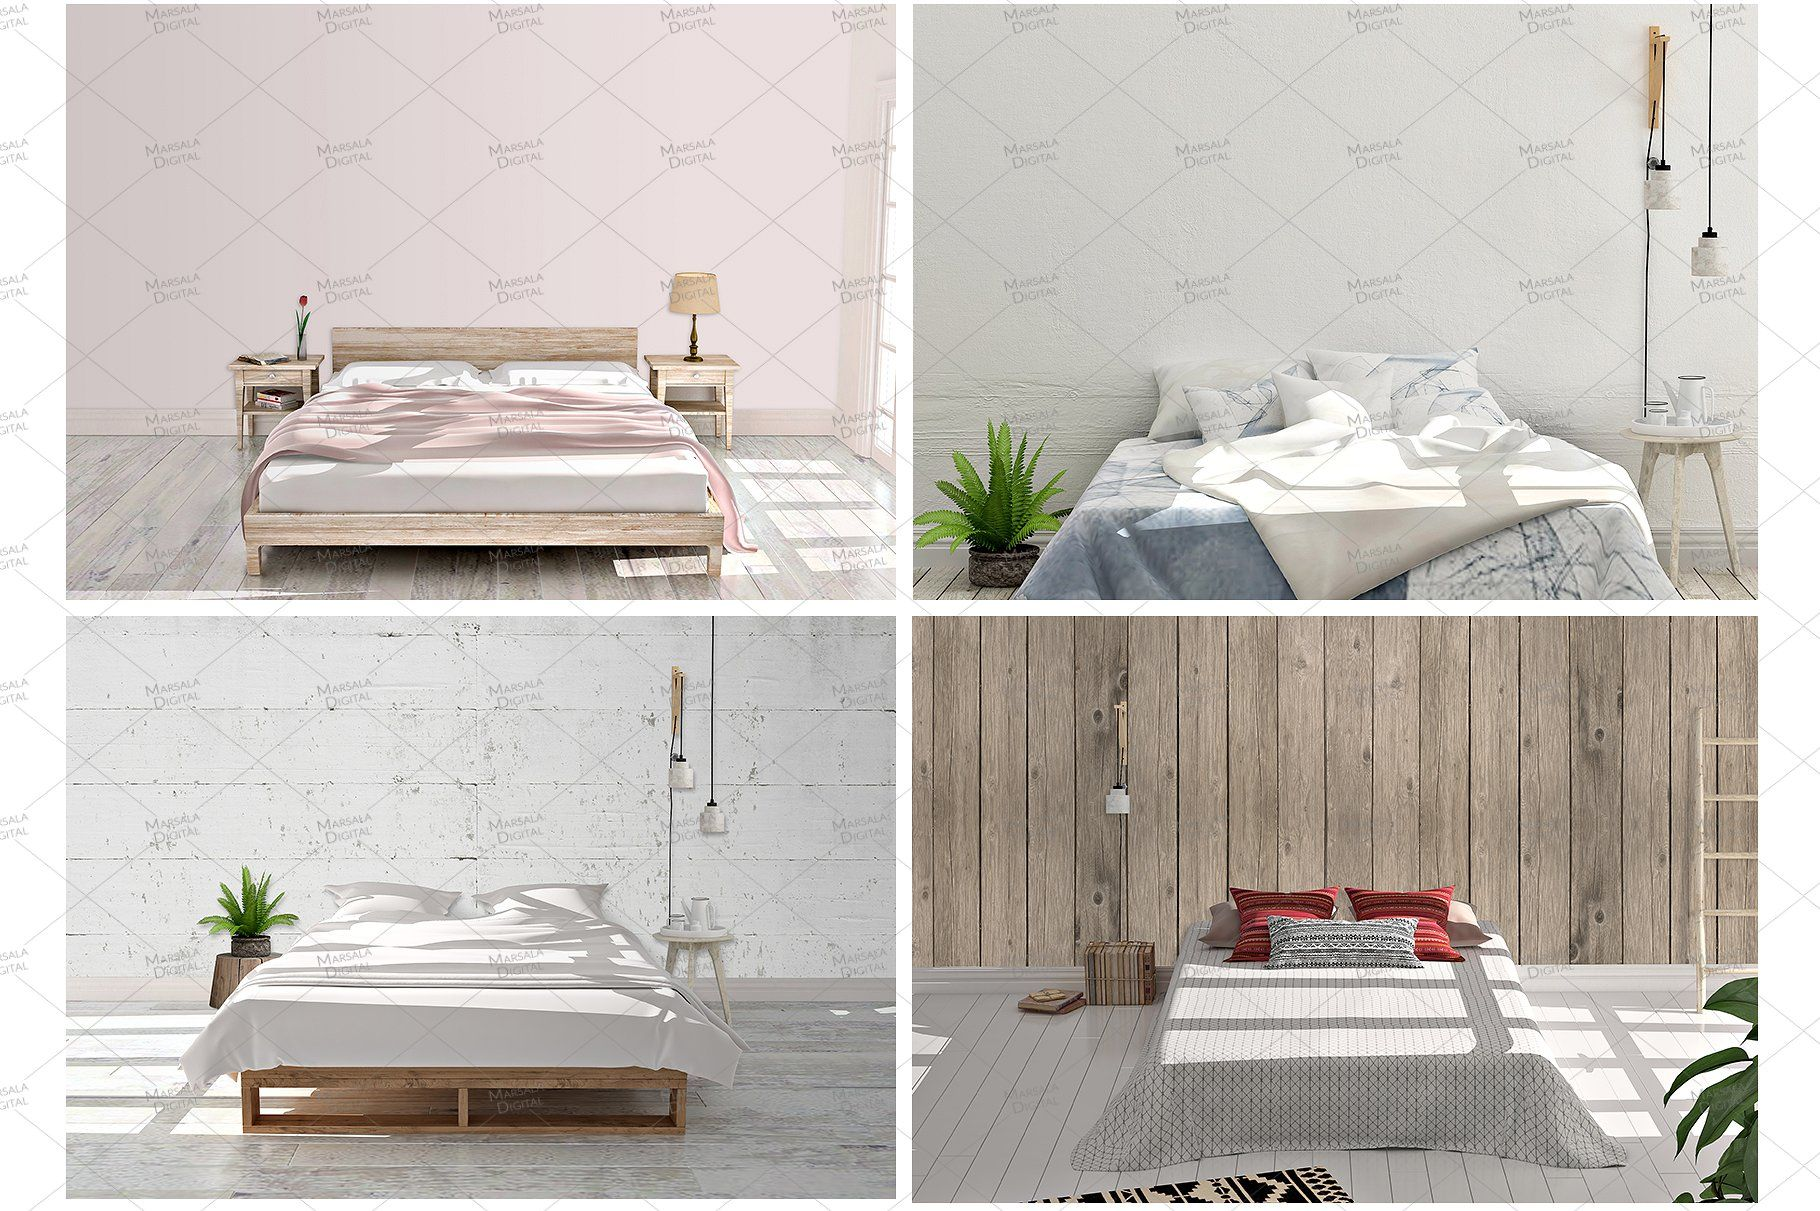 Bedroom Wall Images Bundle Bedroom Wall Wall Home Decor